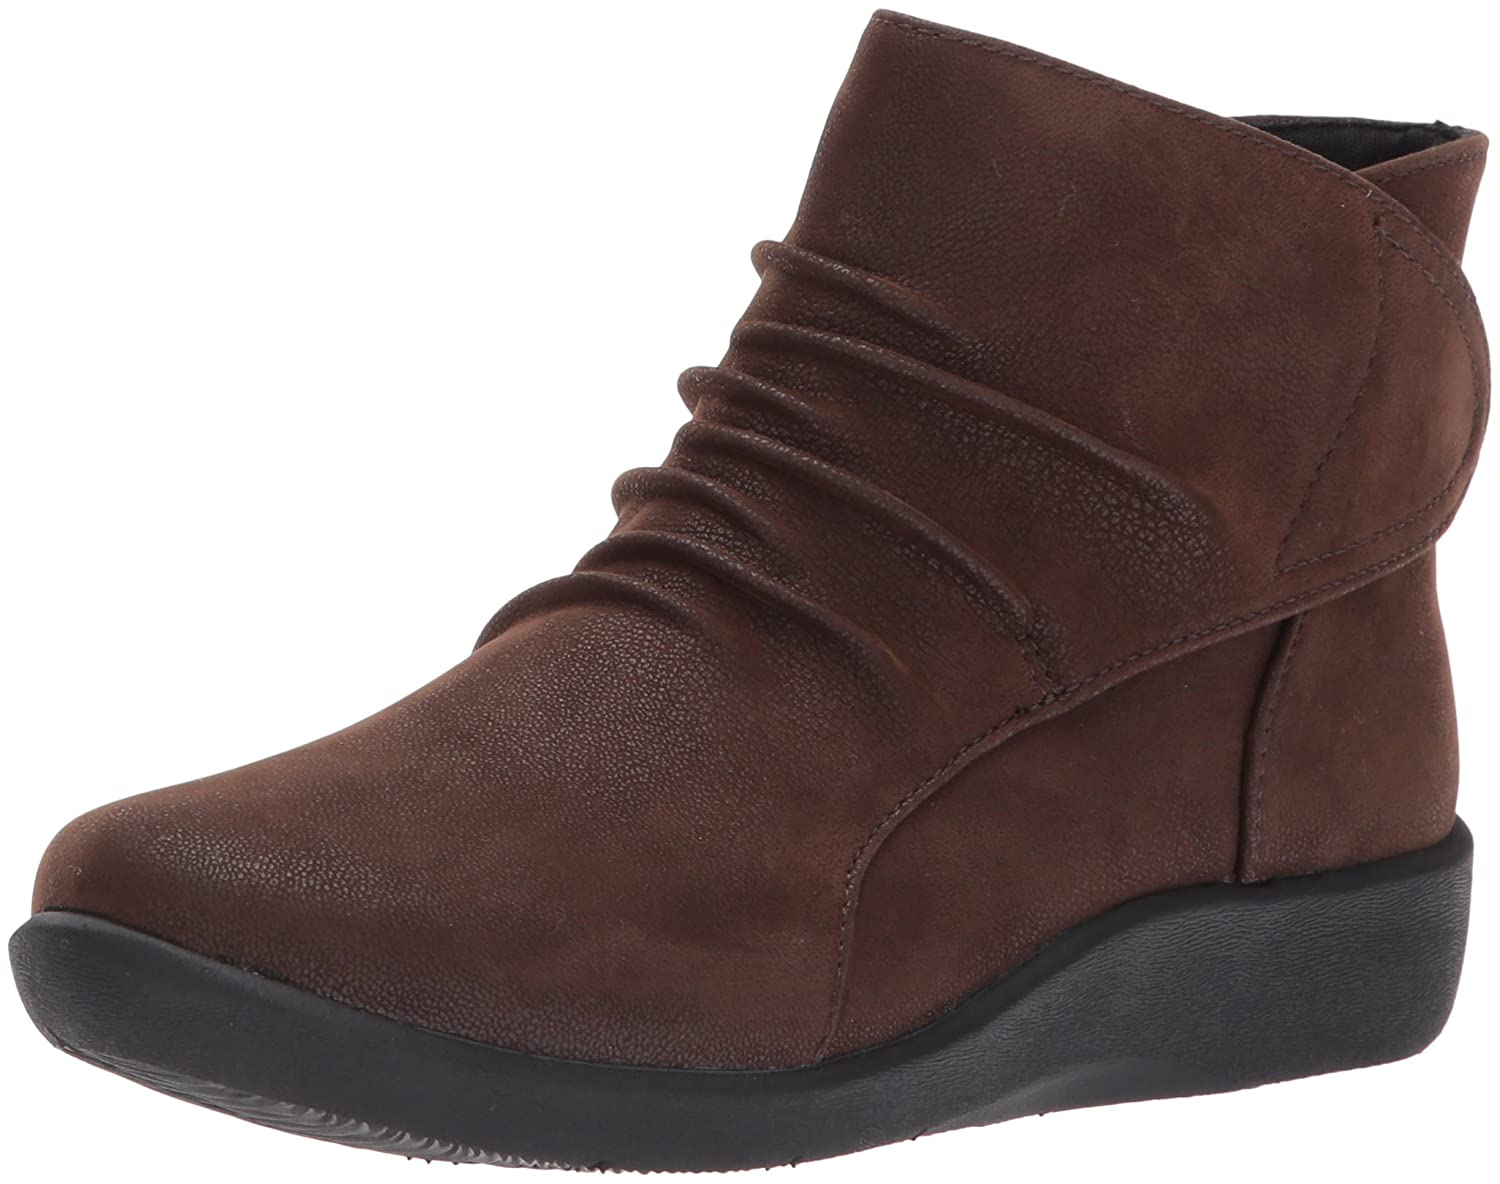 CLARKS Women's Sillian Sway Ankle Bootie B01MSYROH2 6.5 W US|Brown